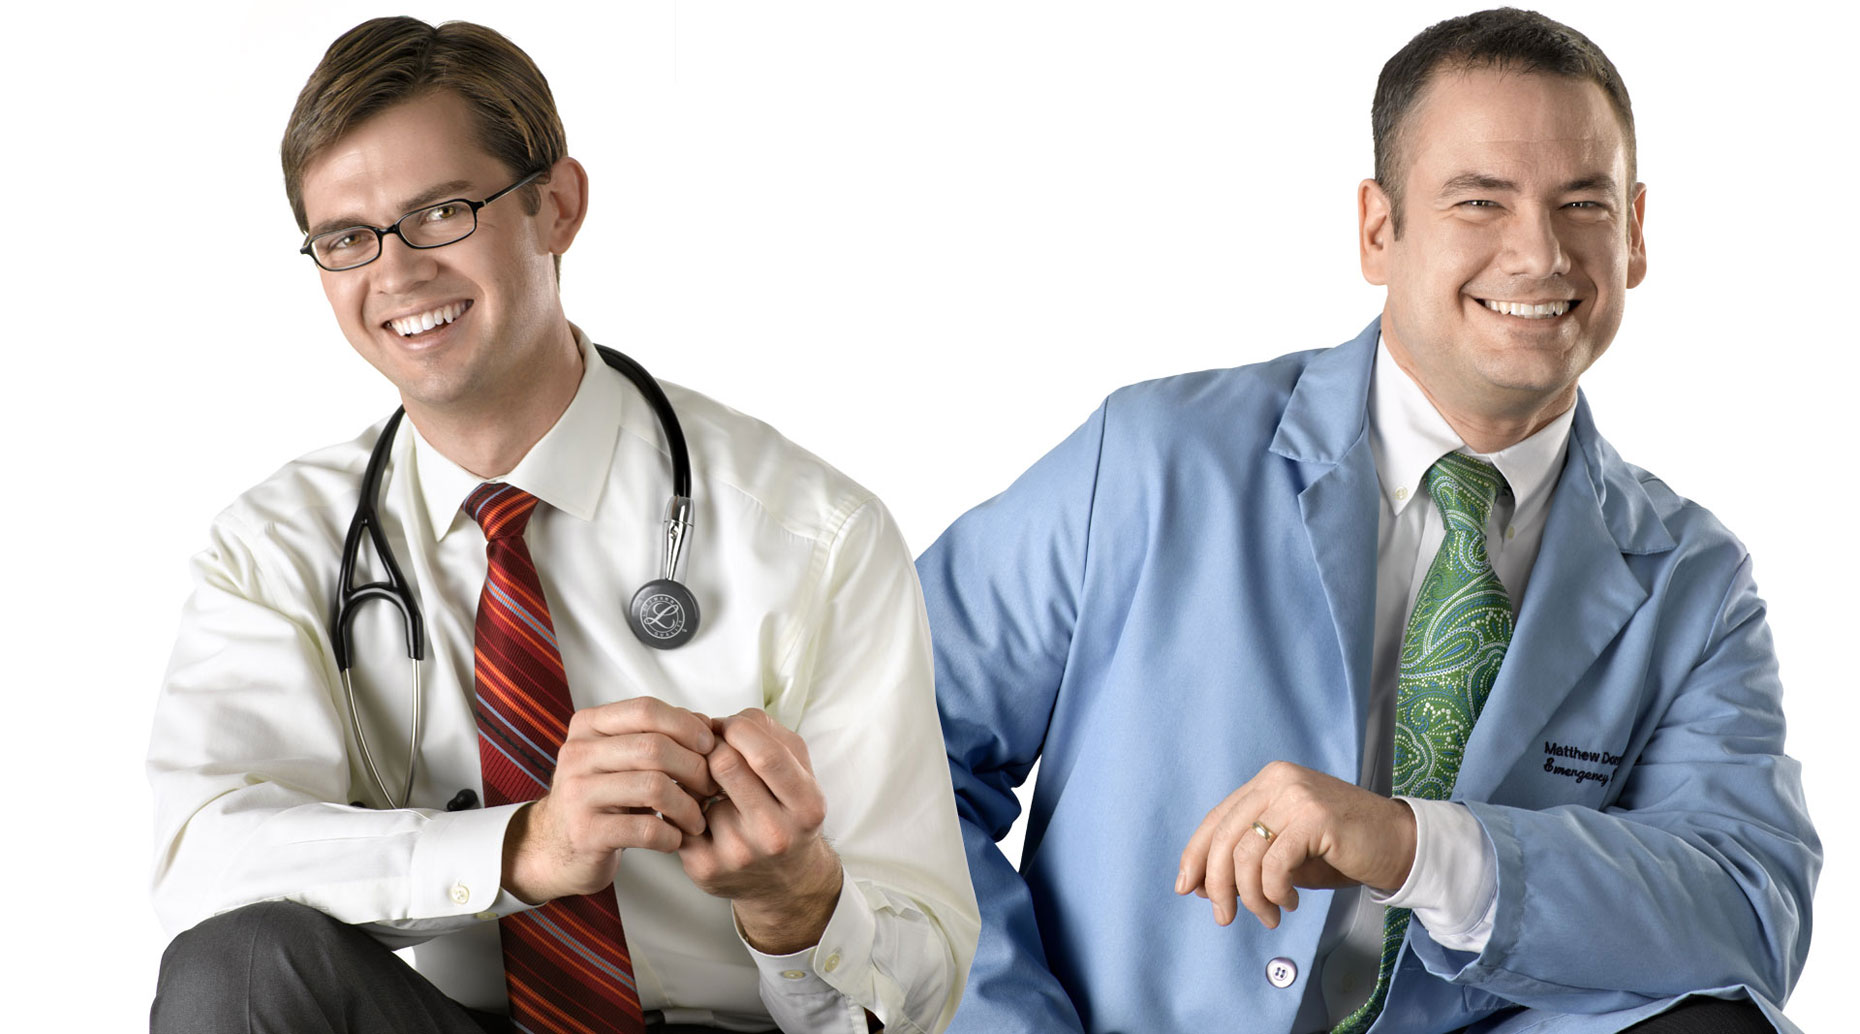 Doctors on a white background.